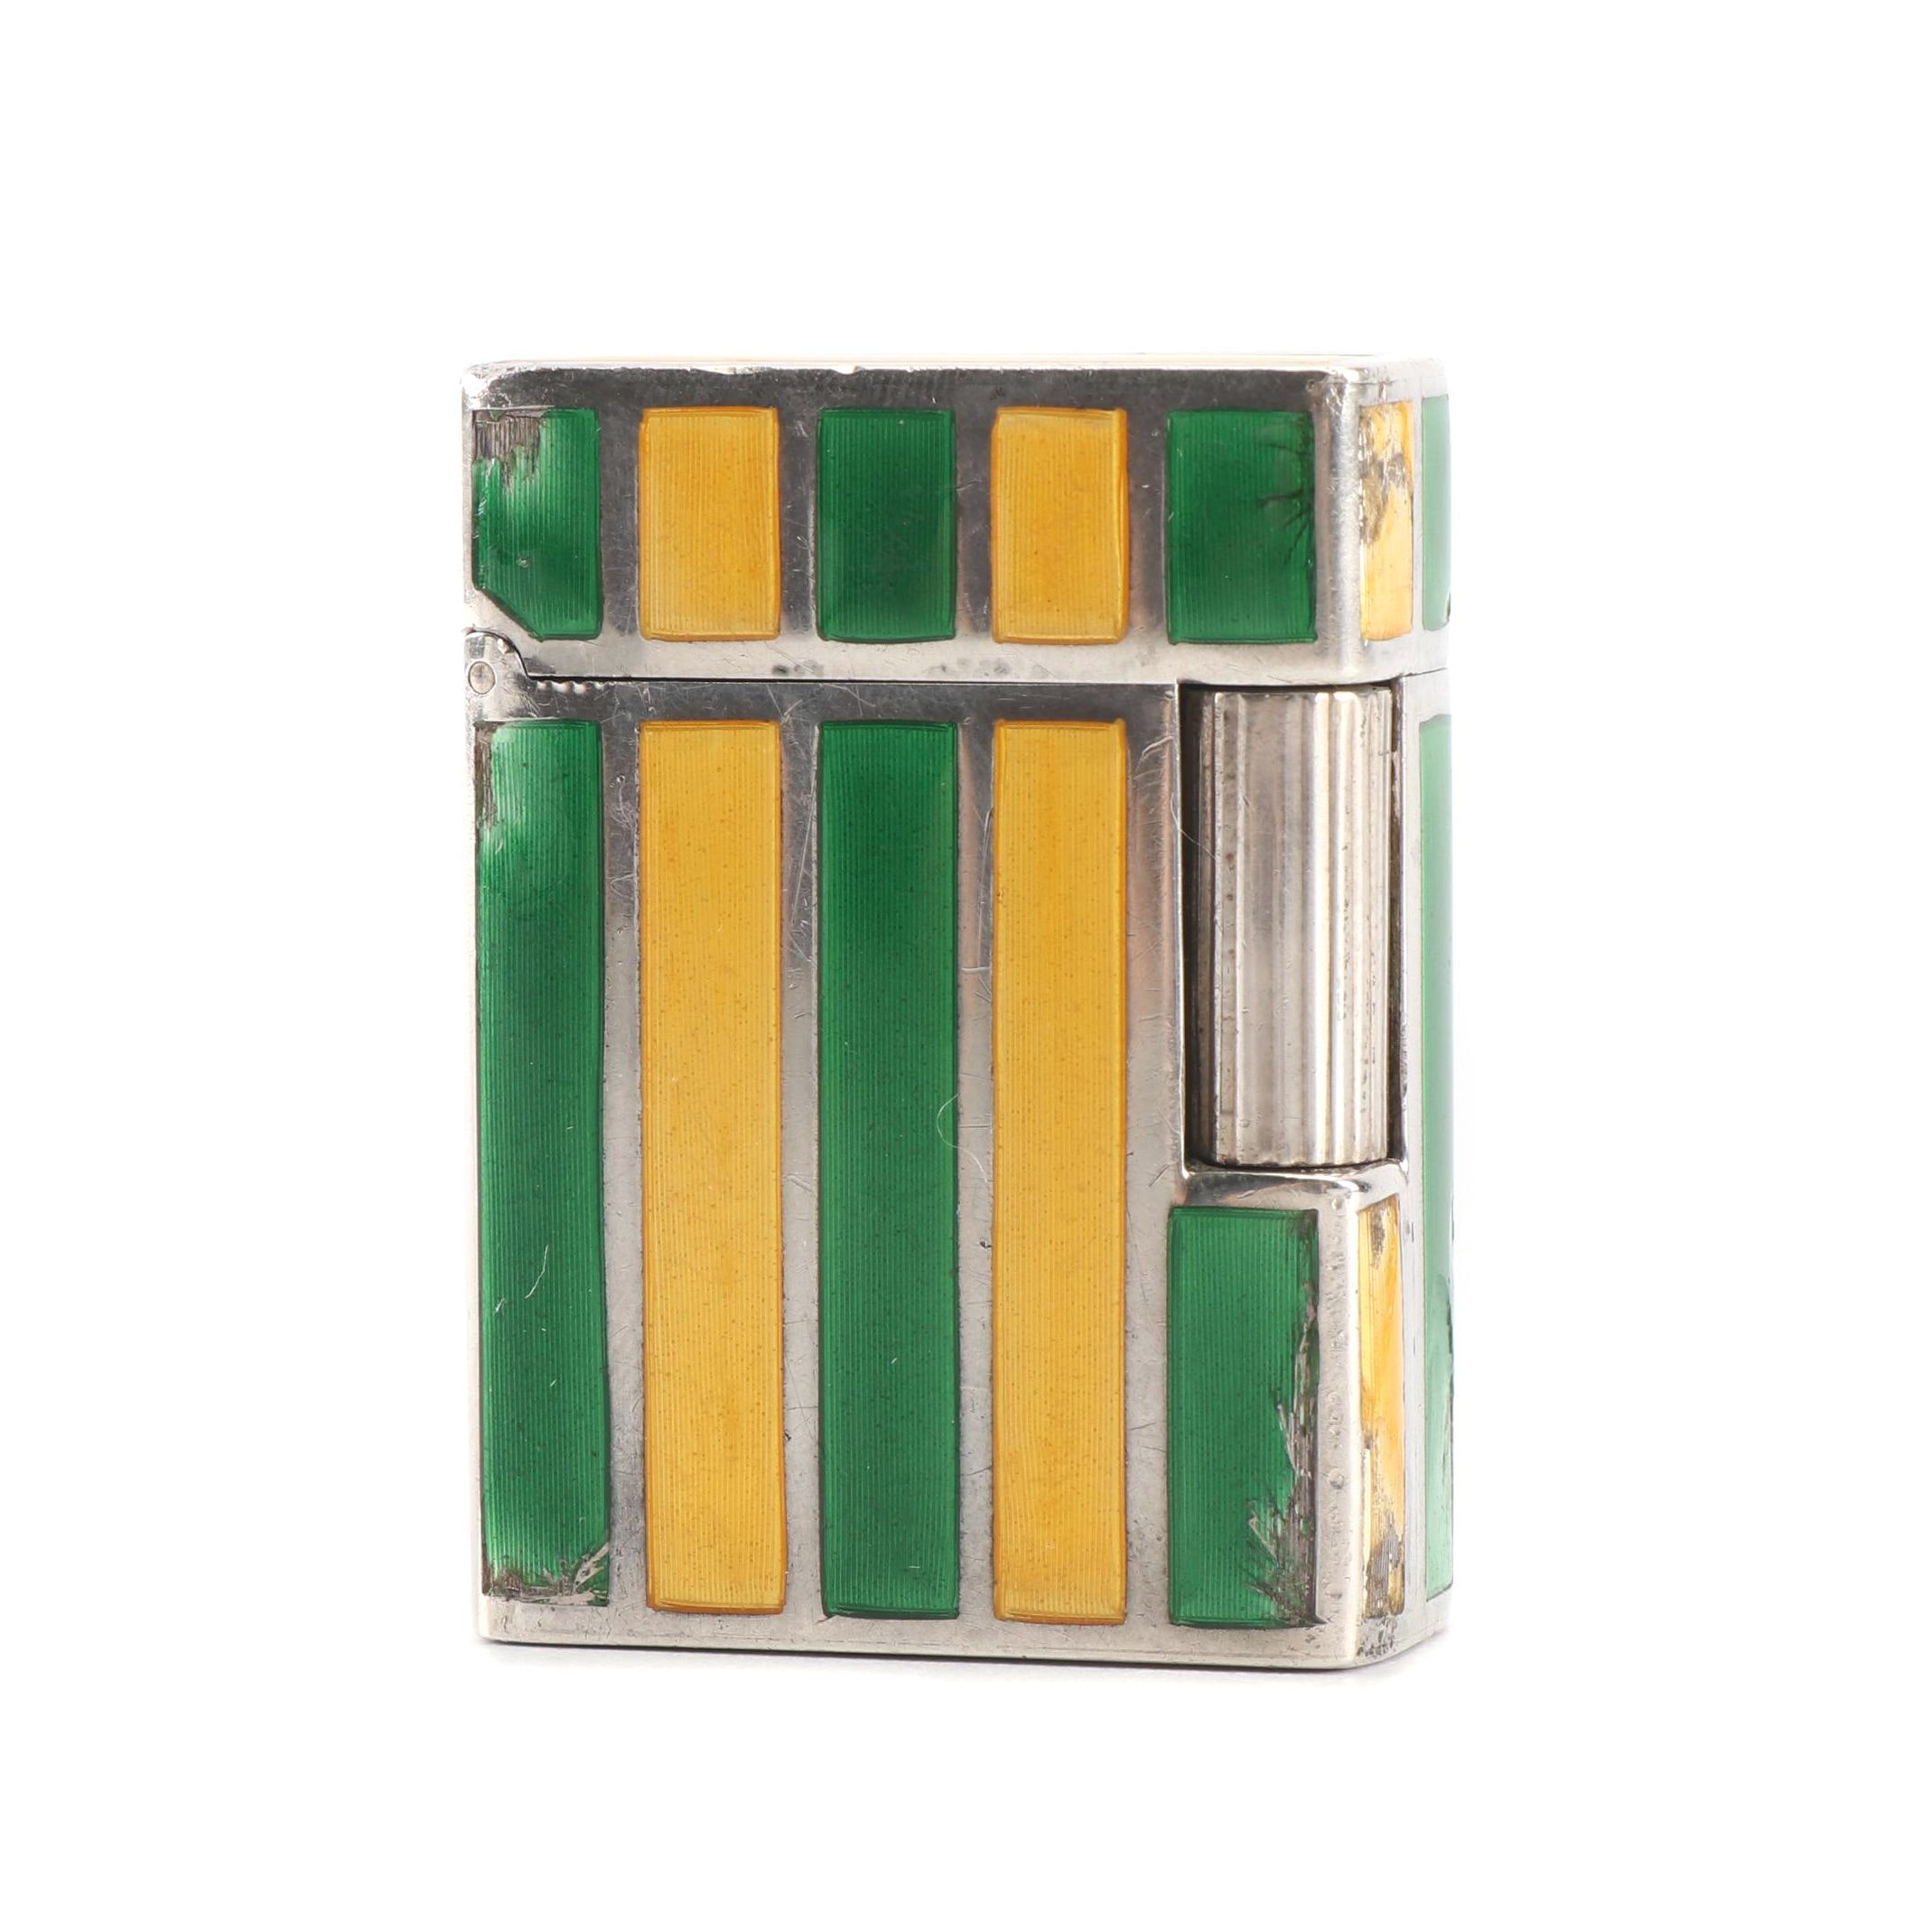 Gucci Green and Gold Enamel and Silver Lighter, Marked Gucci, Italy 925